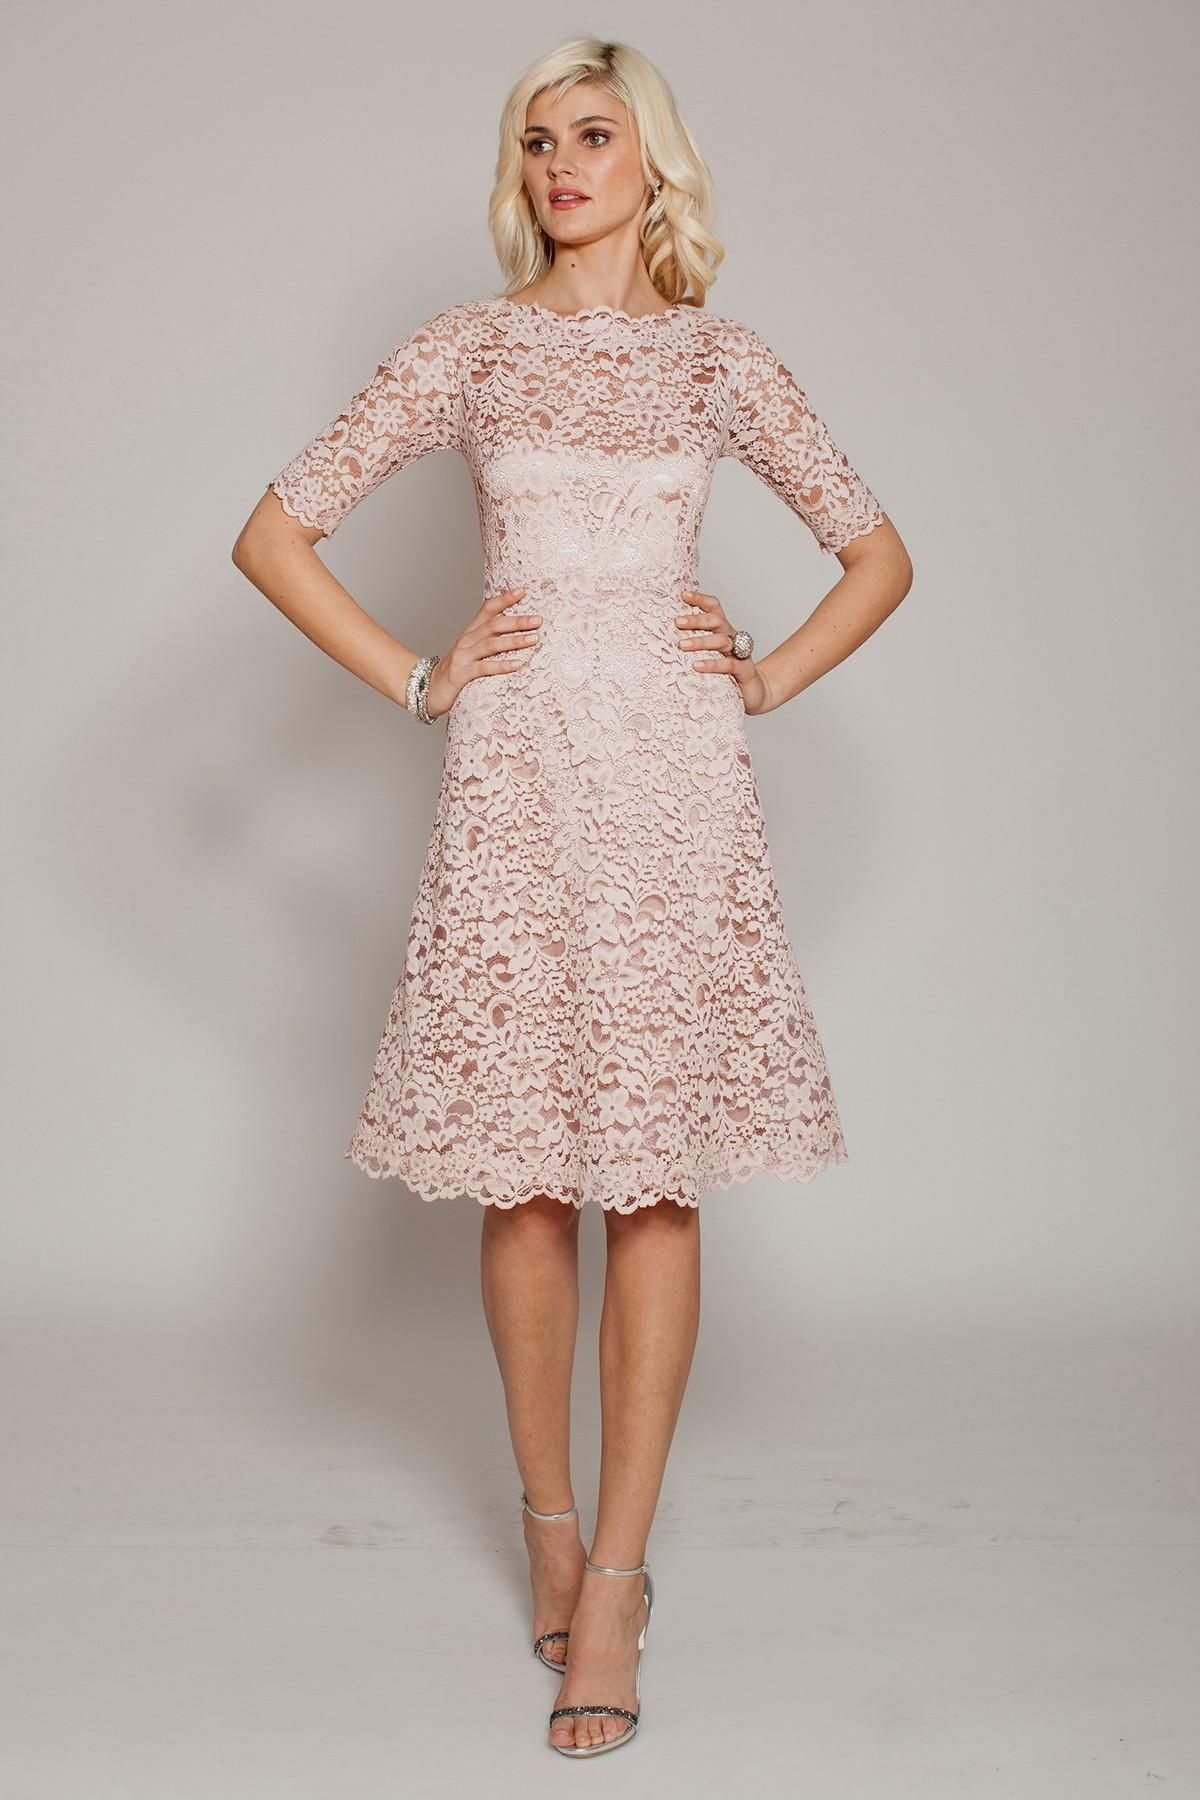 Image result for blush lace dress with sleeves | blush lace dresses ...